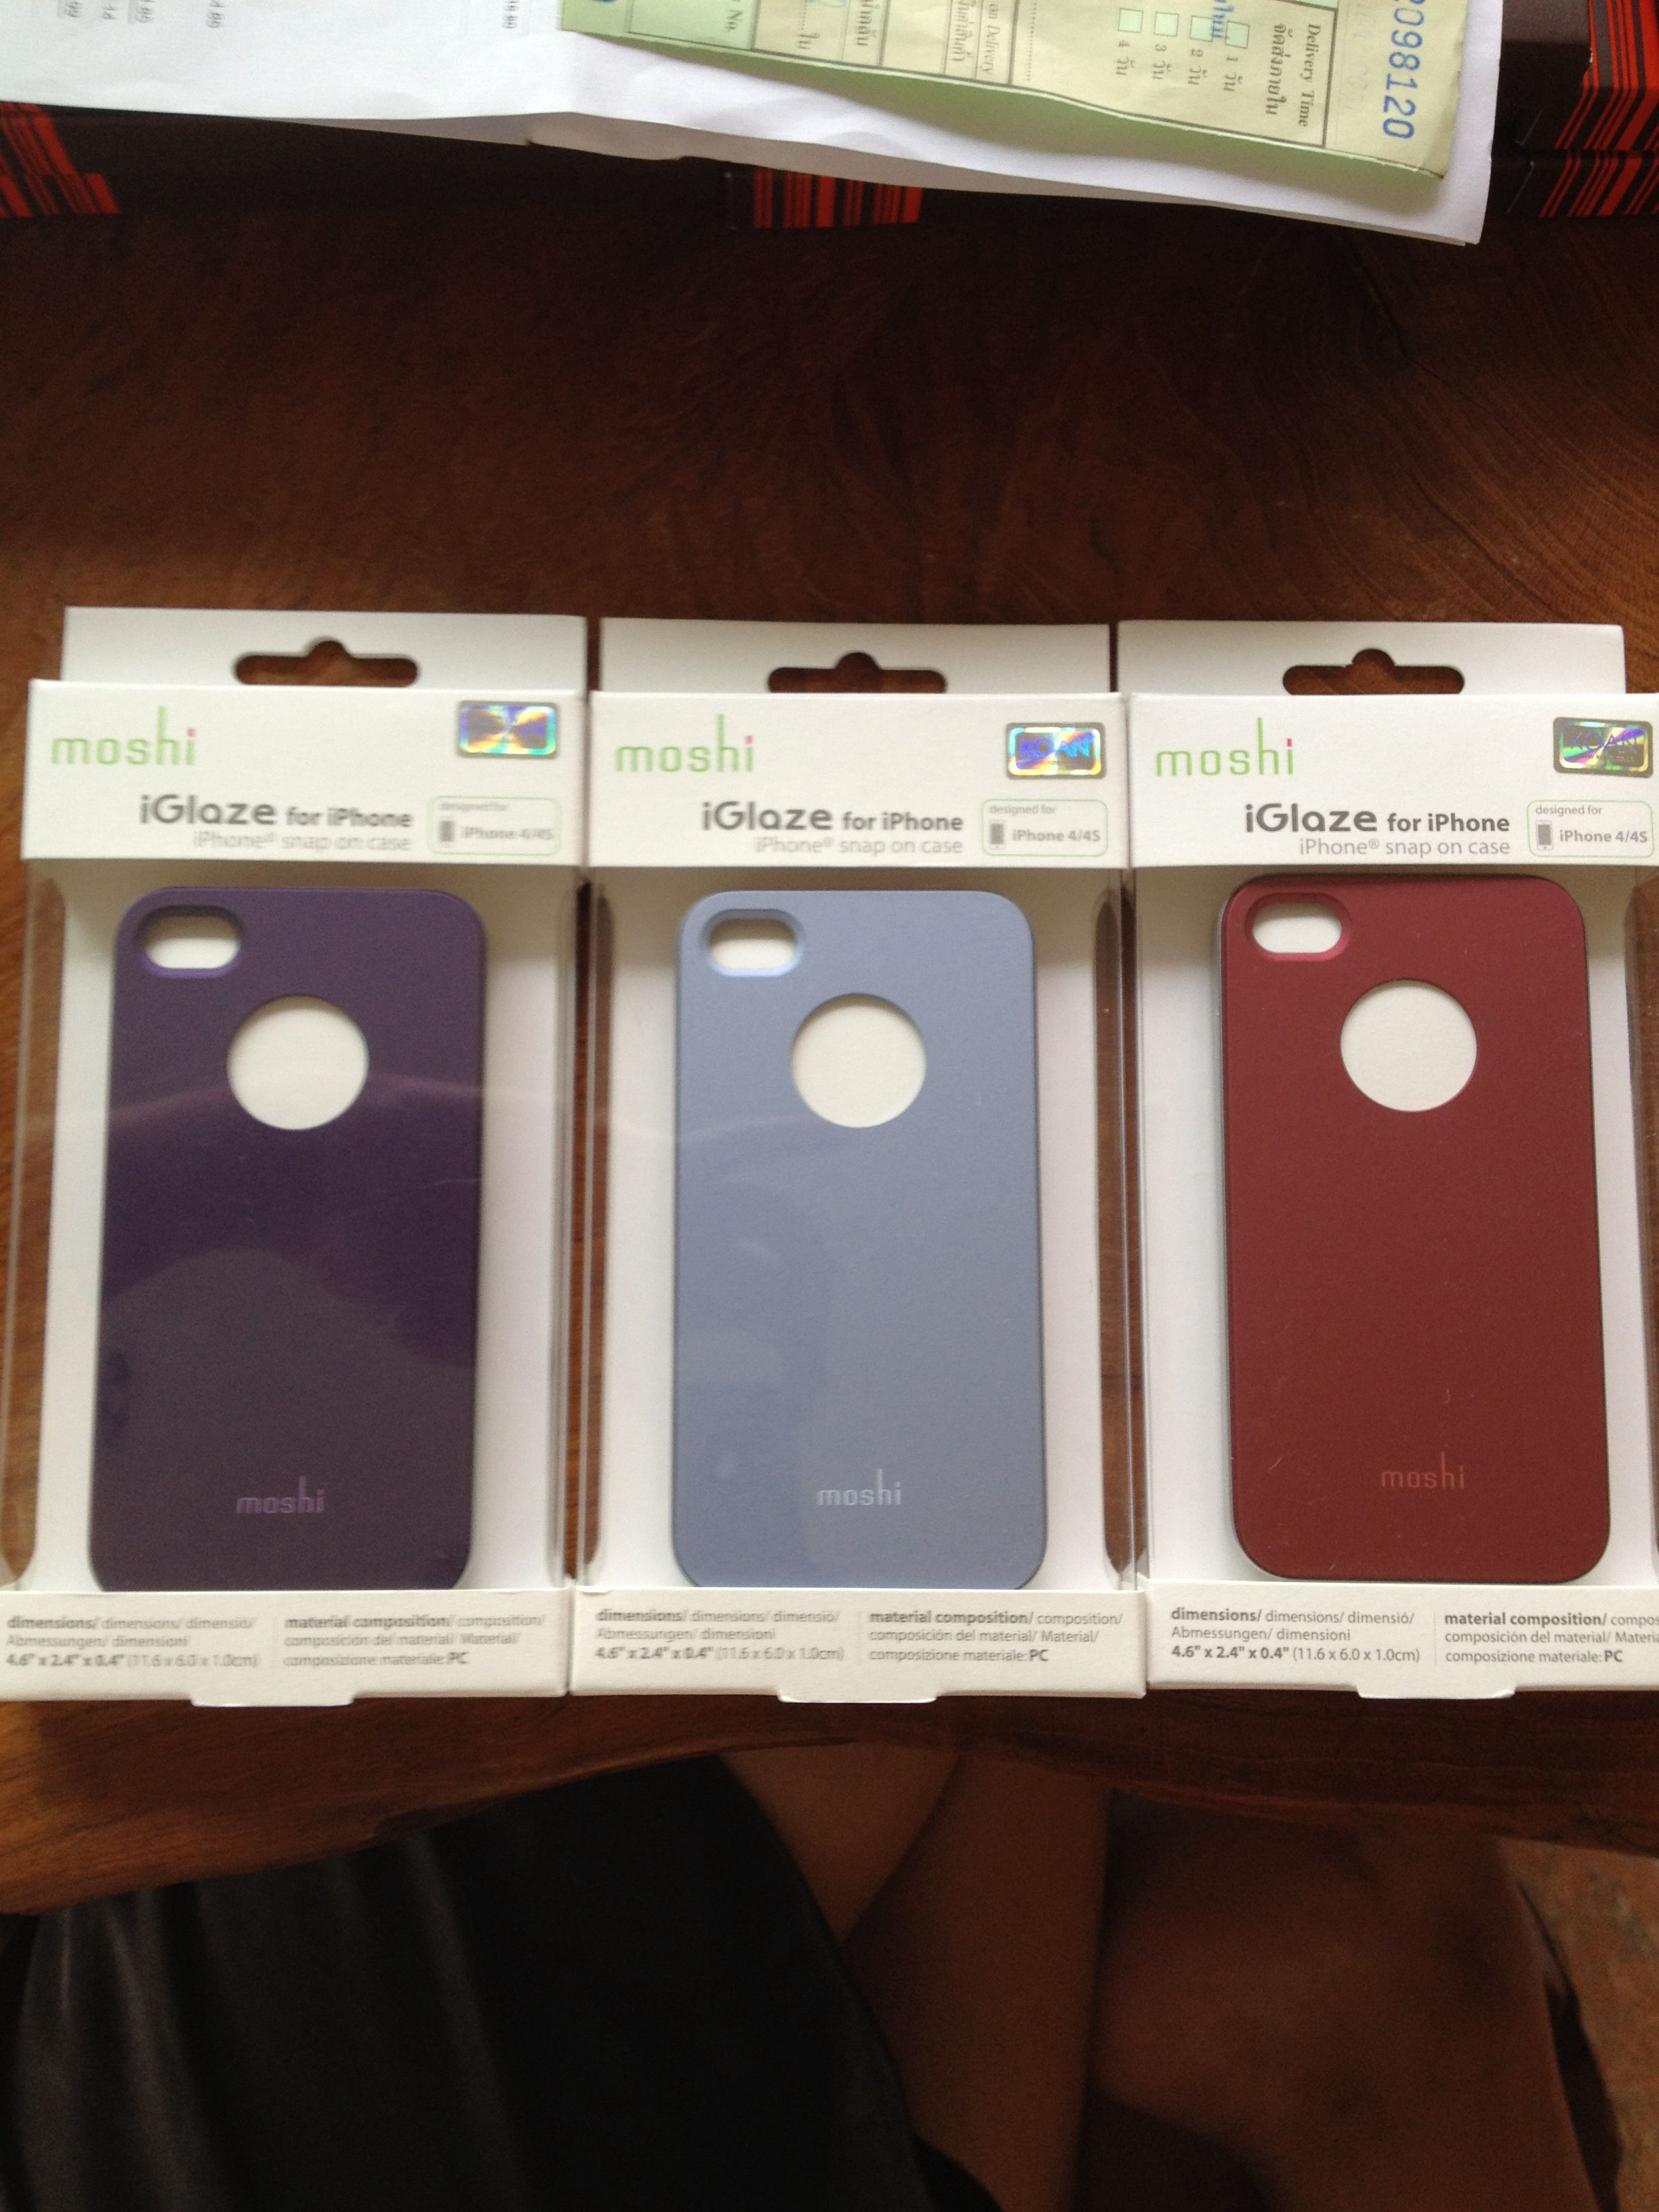 Moshi iGlaze for iPhone